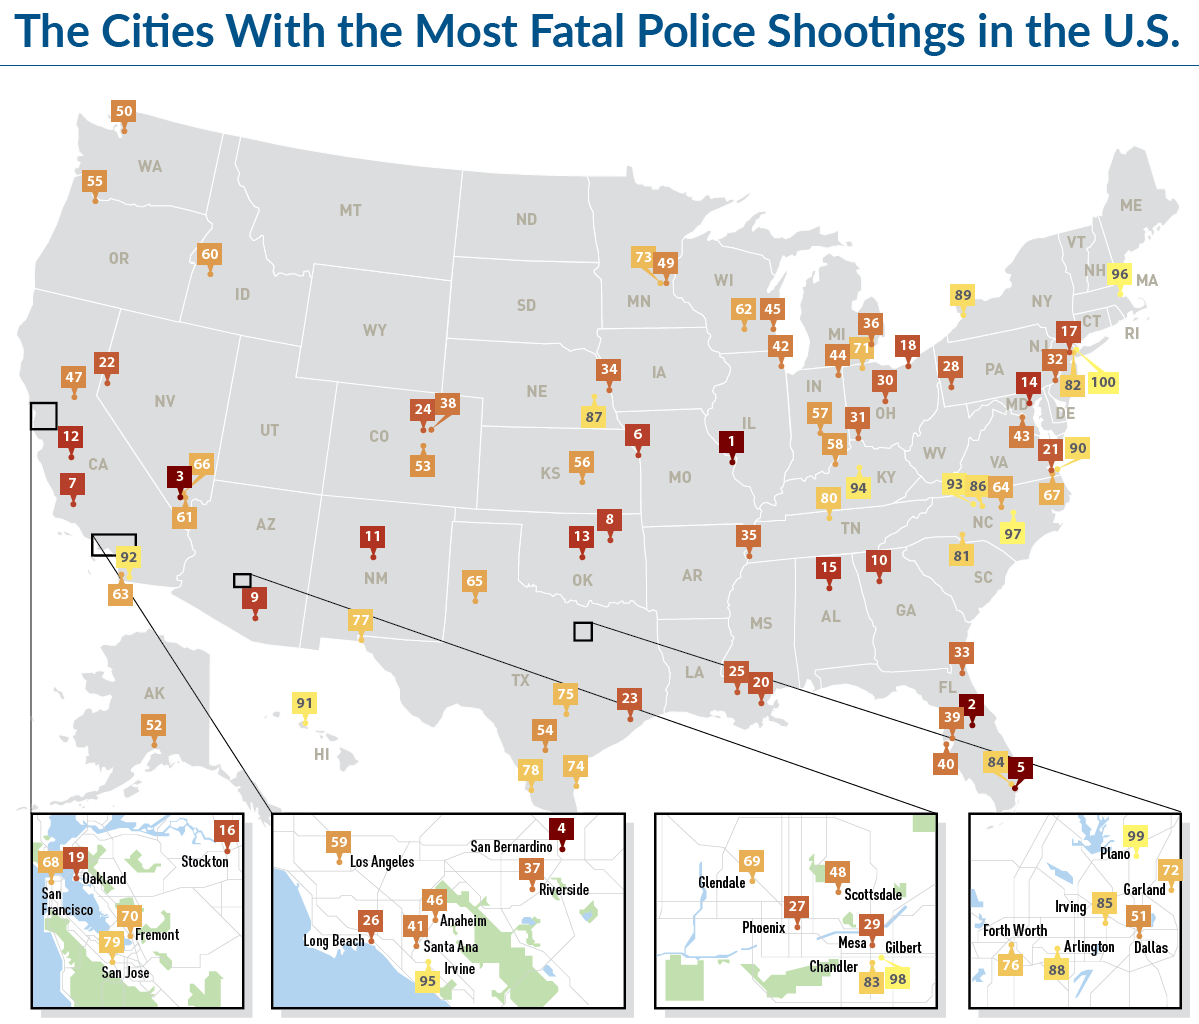 The Cities With the Most Fatal Police Shootings in the U.S.